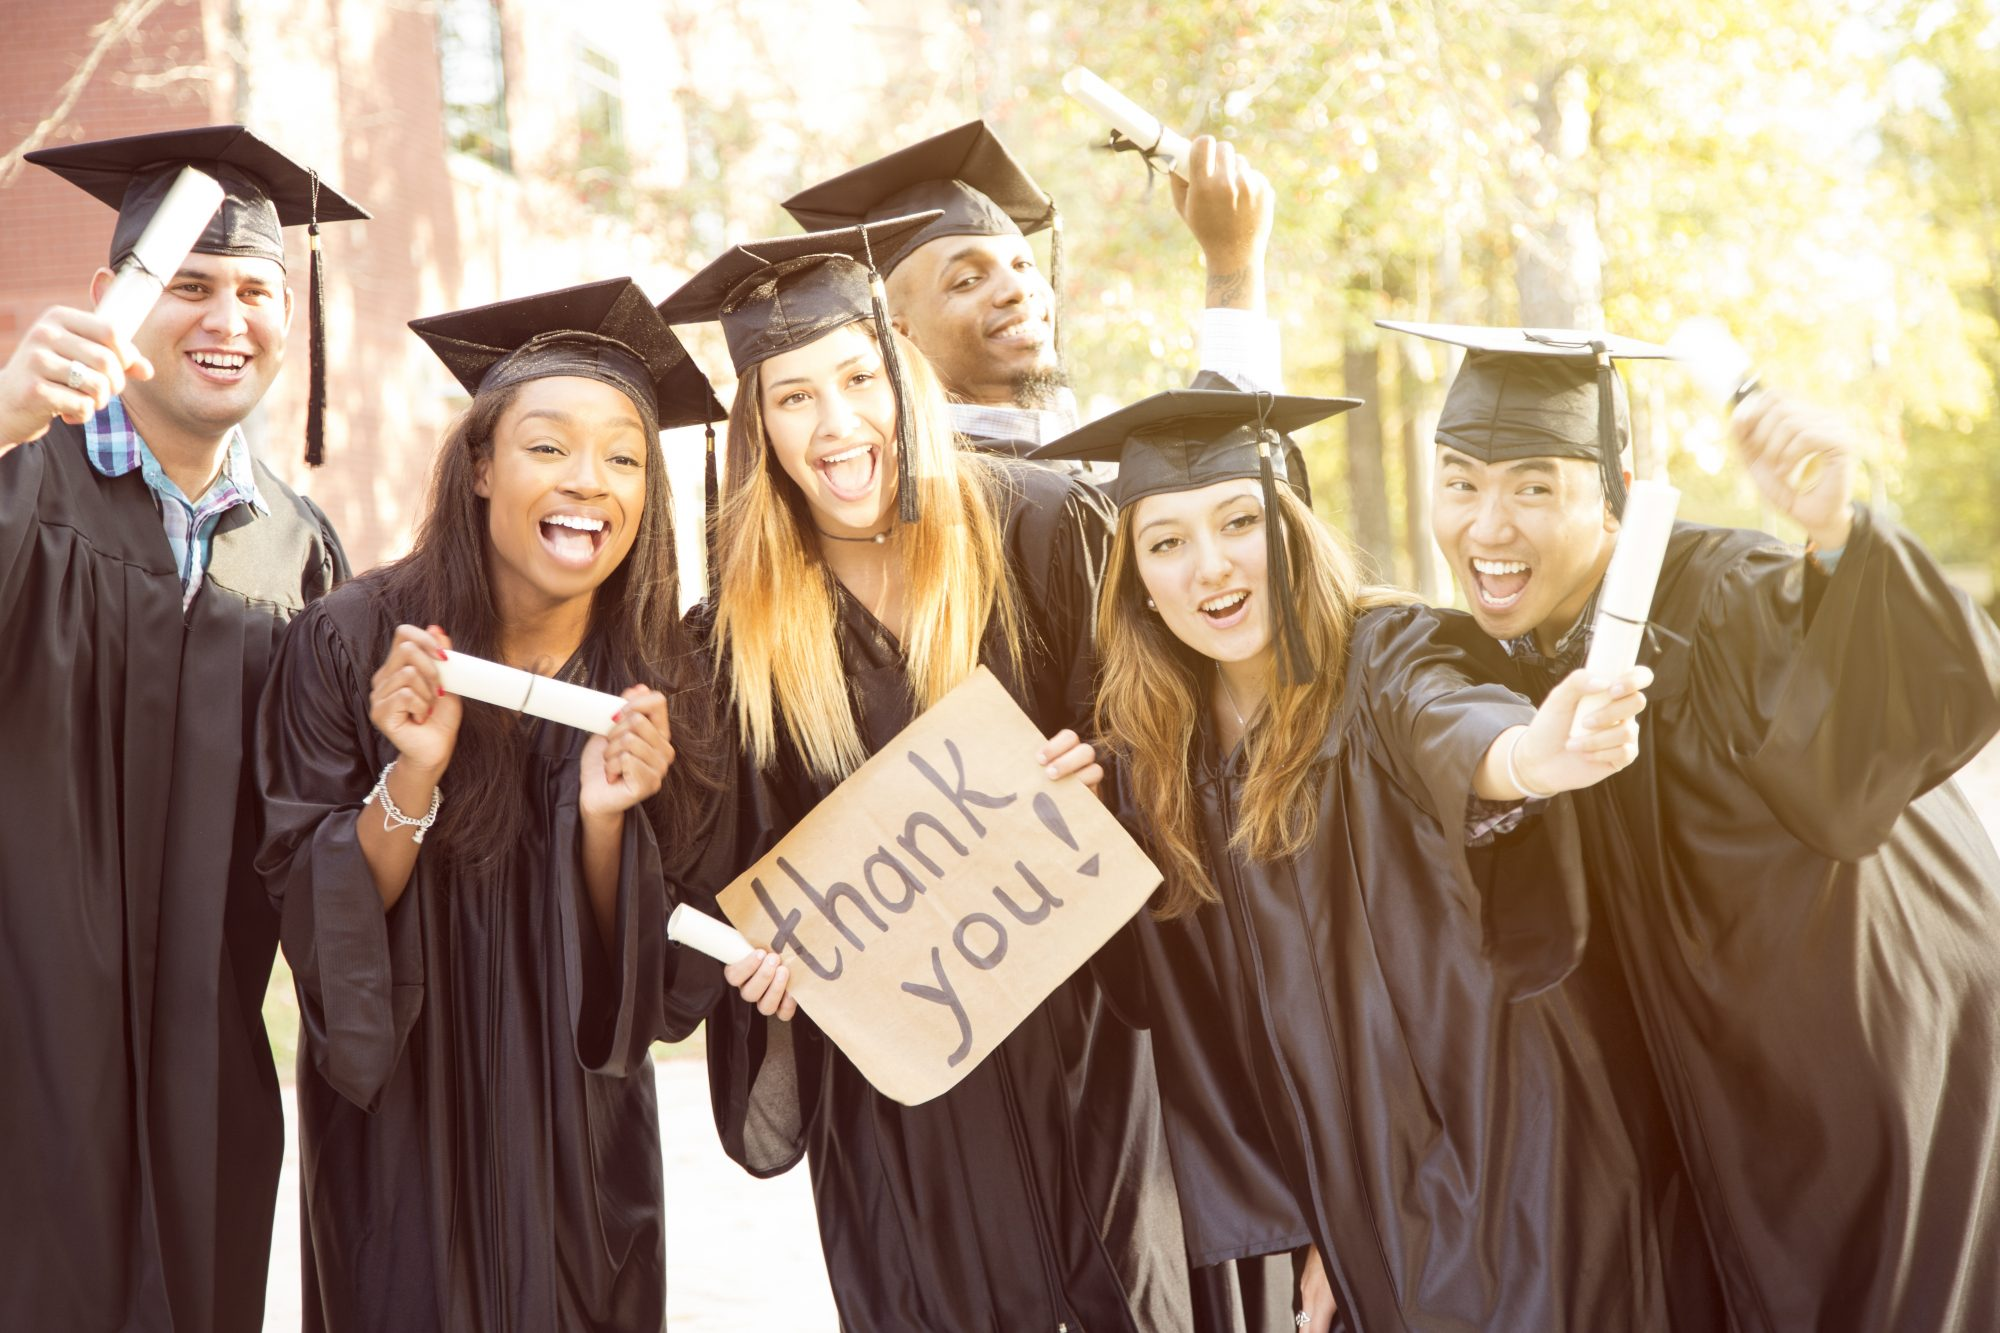 Our Favorite Gifts for High School Graduates